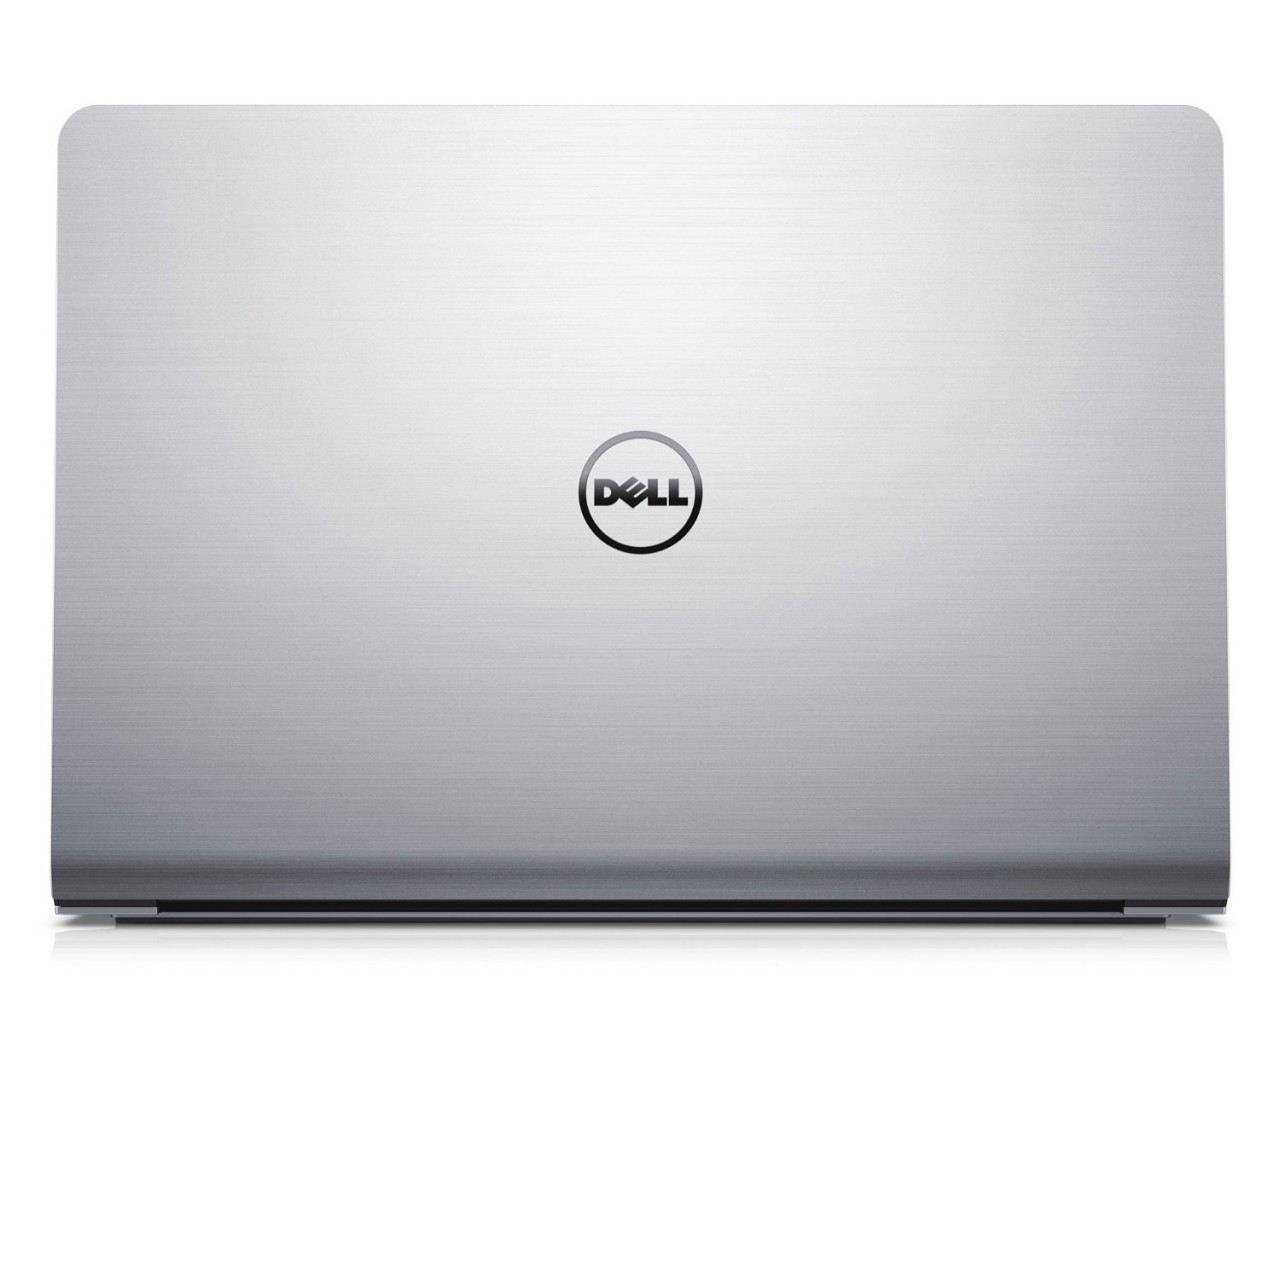 Notebook Dell Inspiron 5557 Core I7 6500U Memoria 16Gb Hd 1Tb Placa Video 930M 4Gb Tela 15.6' Led Fhd Win 10 Pro